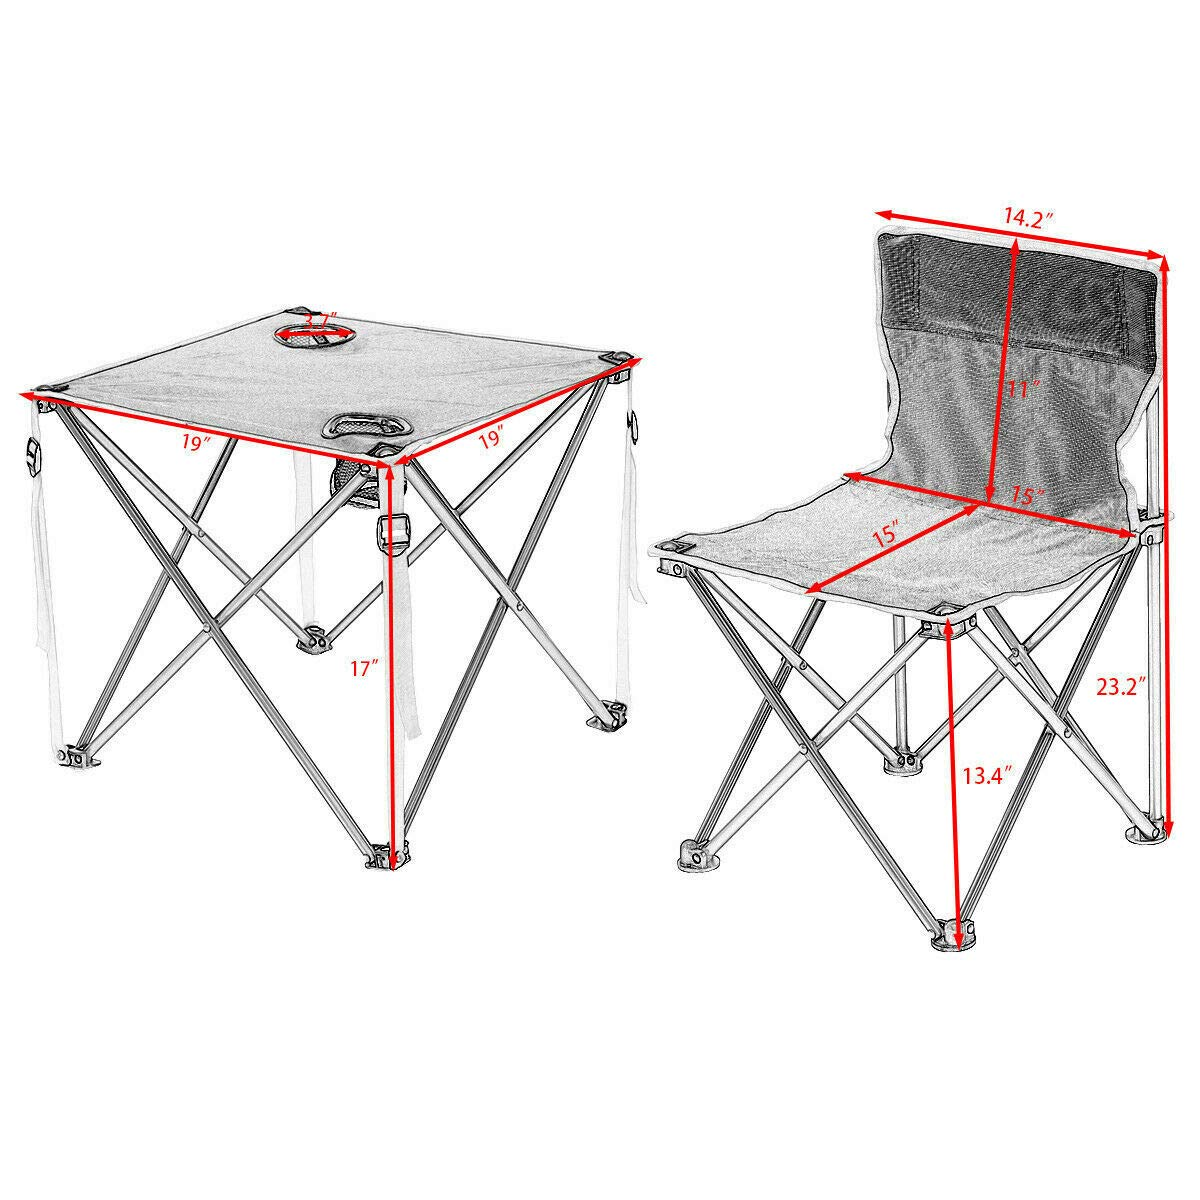 ANA Store Enjoy Barbecue Party Curl Stand Iron Stell Frame Green Oxford Portable Folding Table Chairs Set Inside Outside Camp Beach Picnic with Carrying Bag by ANA Store (Image #6)